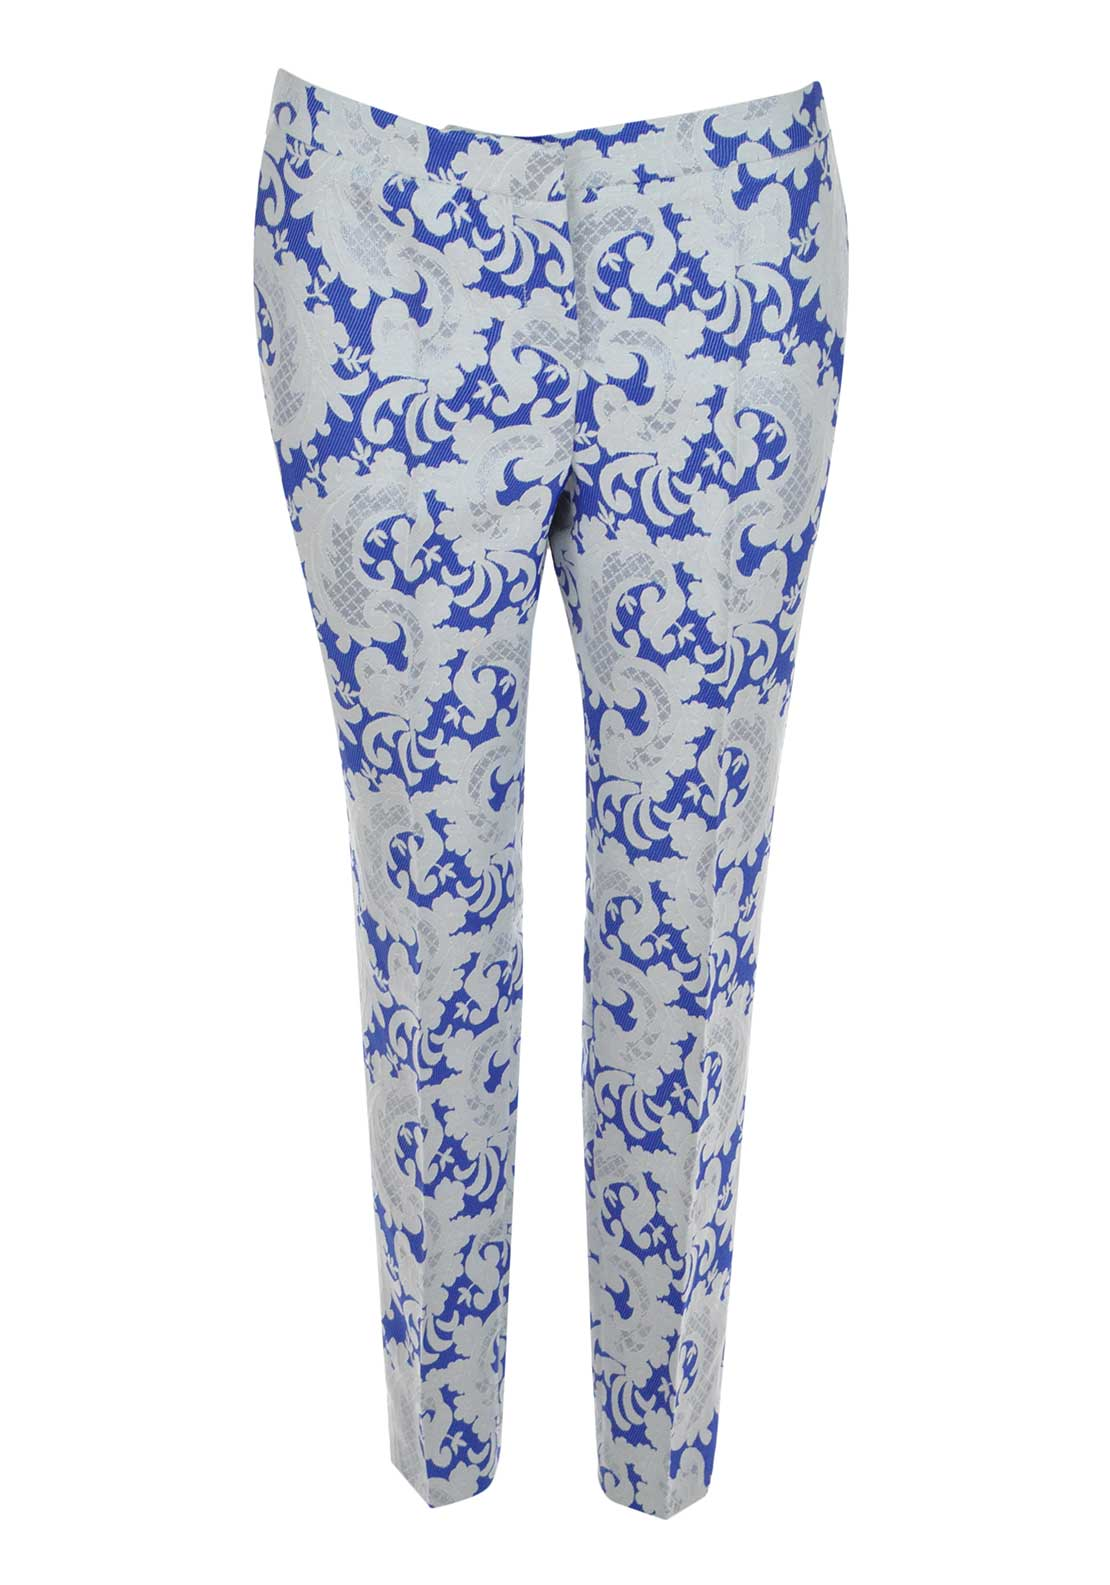 Ella Boo Paisley Print Slim Fit 7/8 Trousers, Blue and White